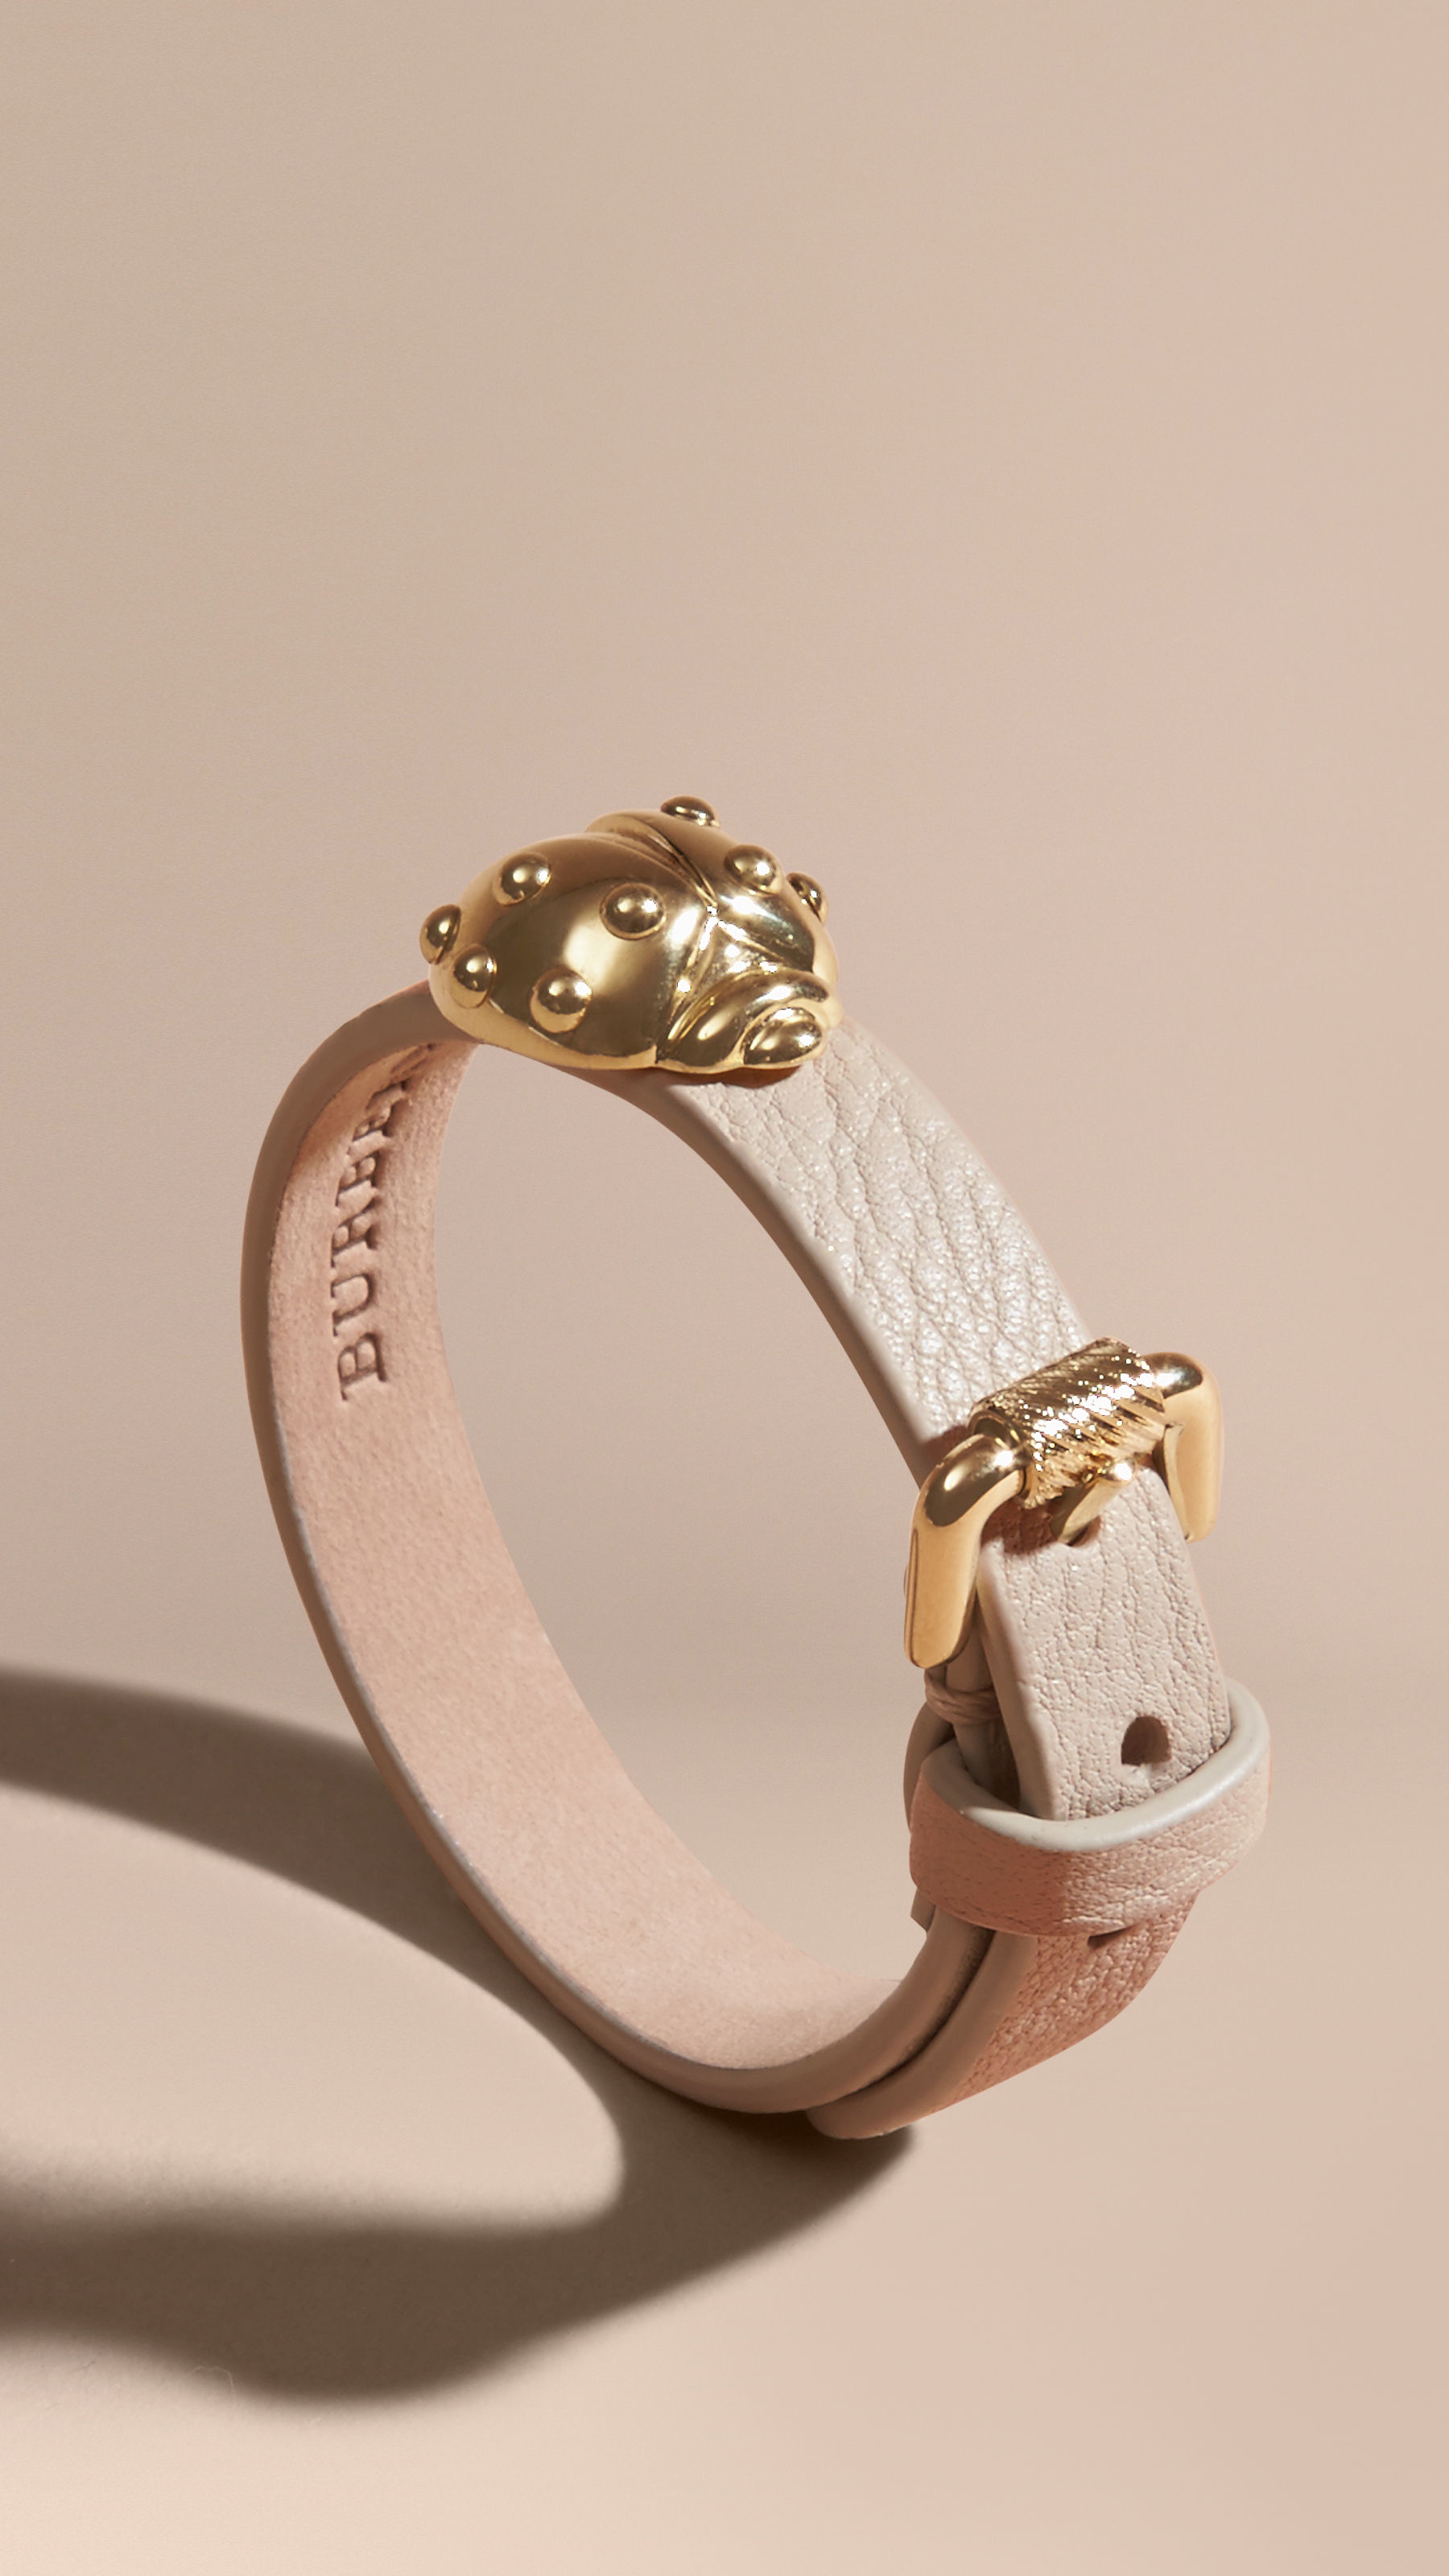 burberry ladybird motif leather cuff in gold